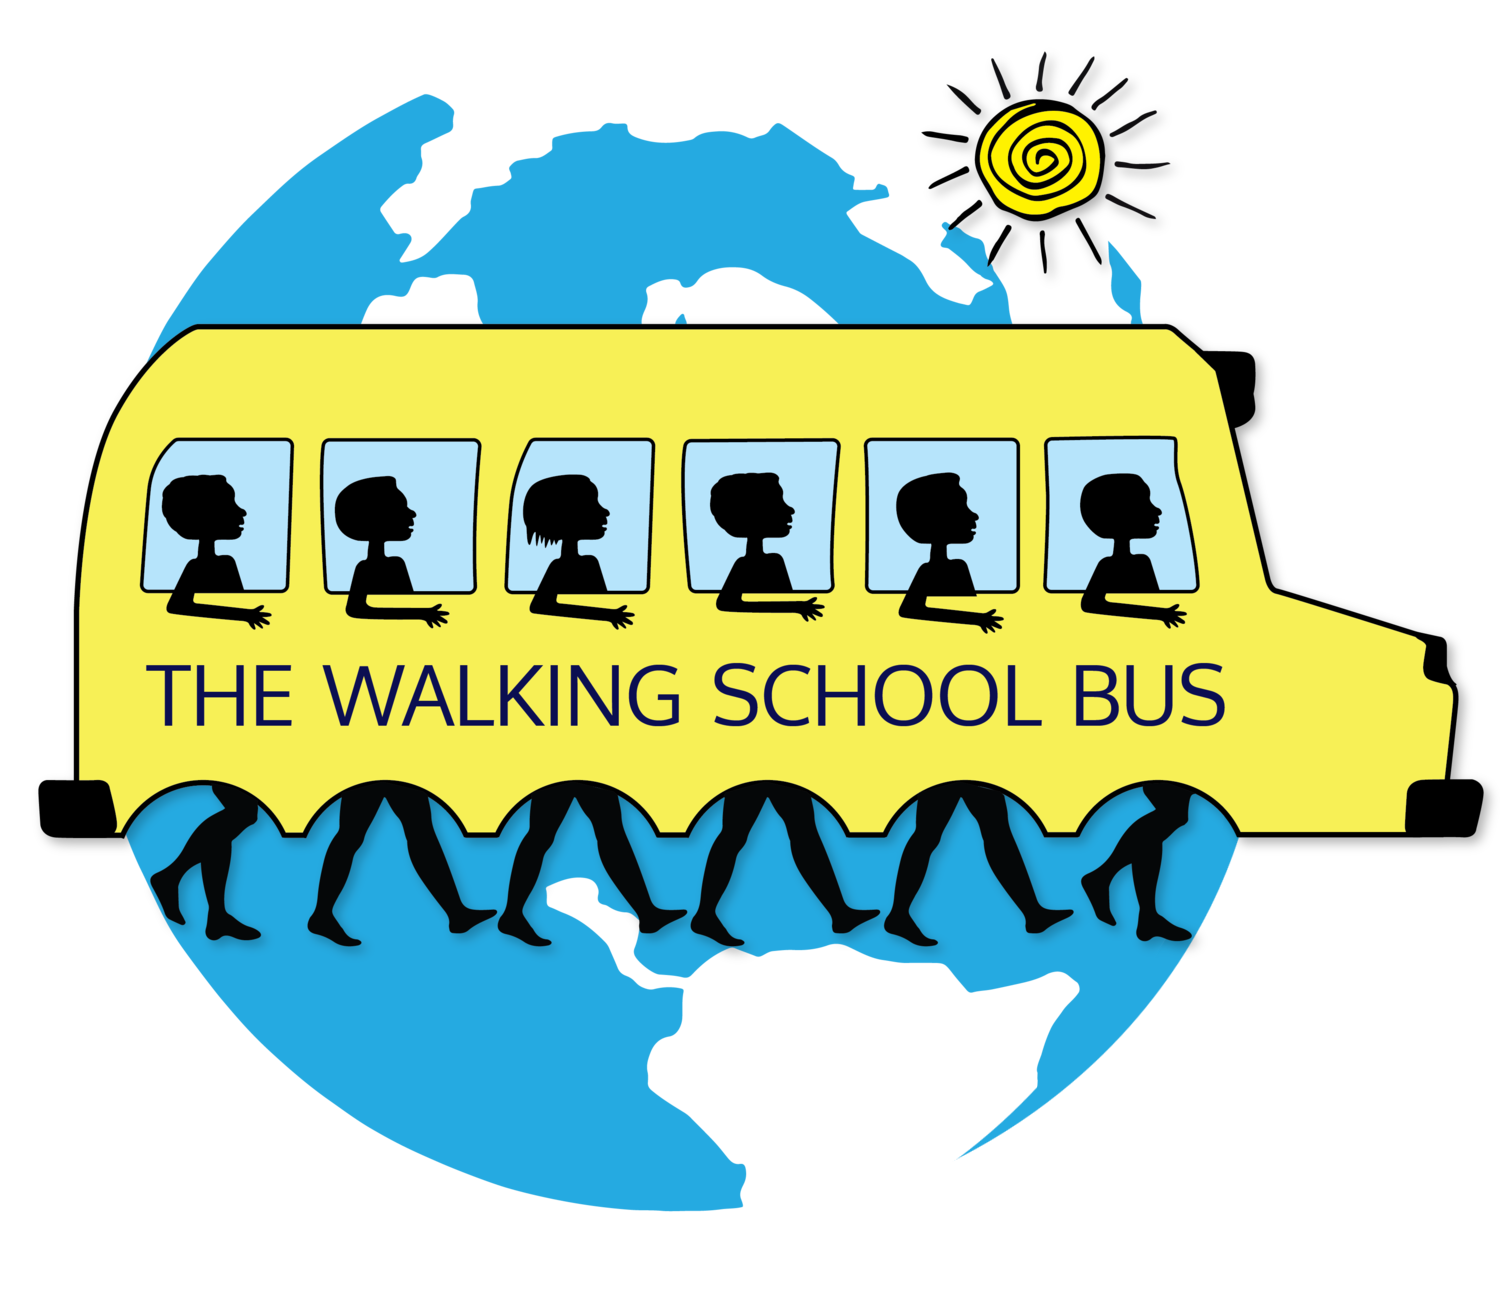 Walking home from school clipart clipart The Walking School Bus clipart